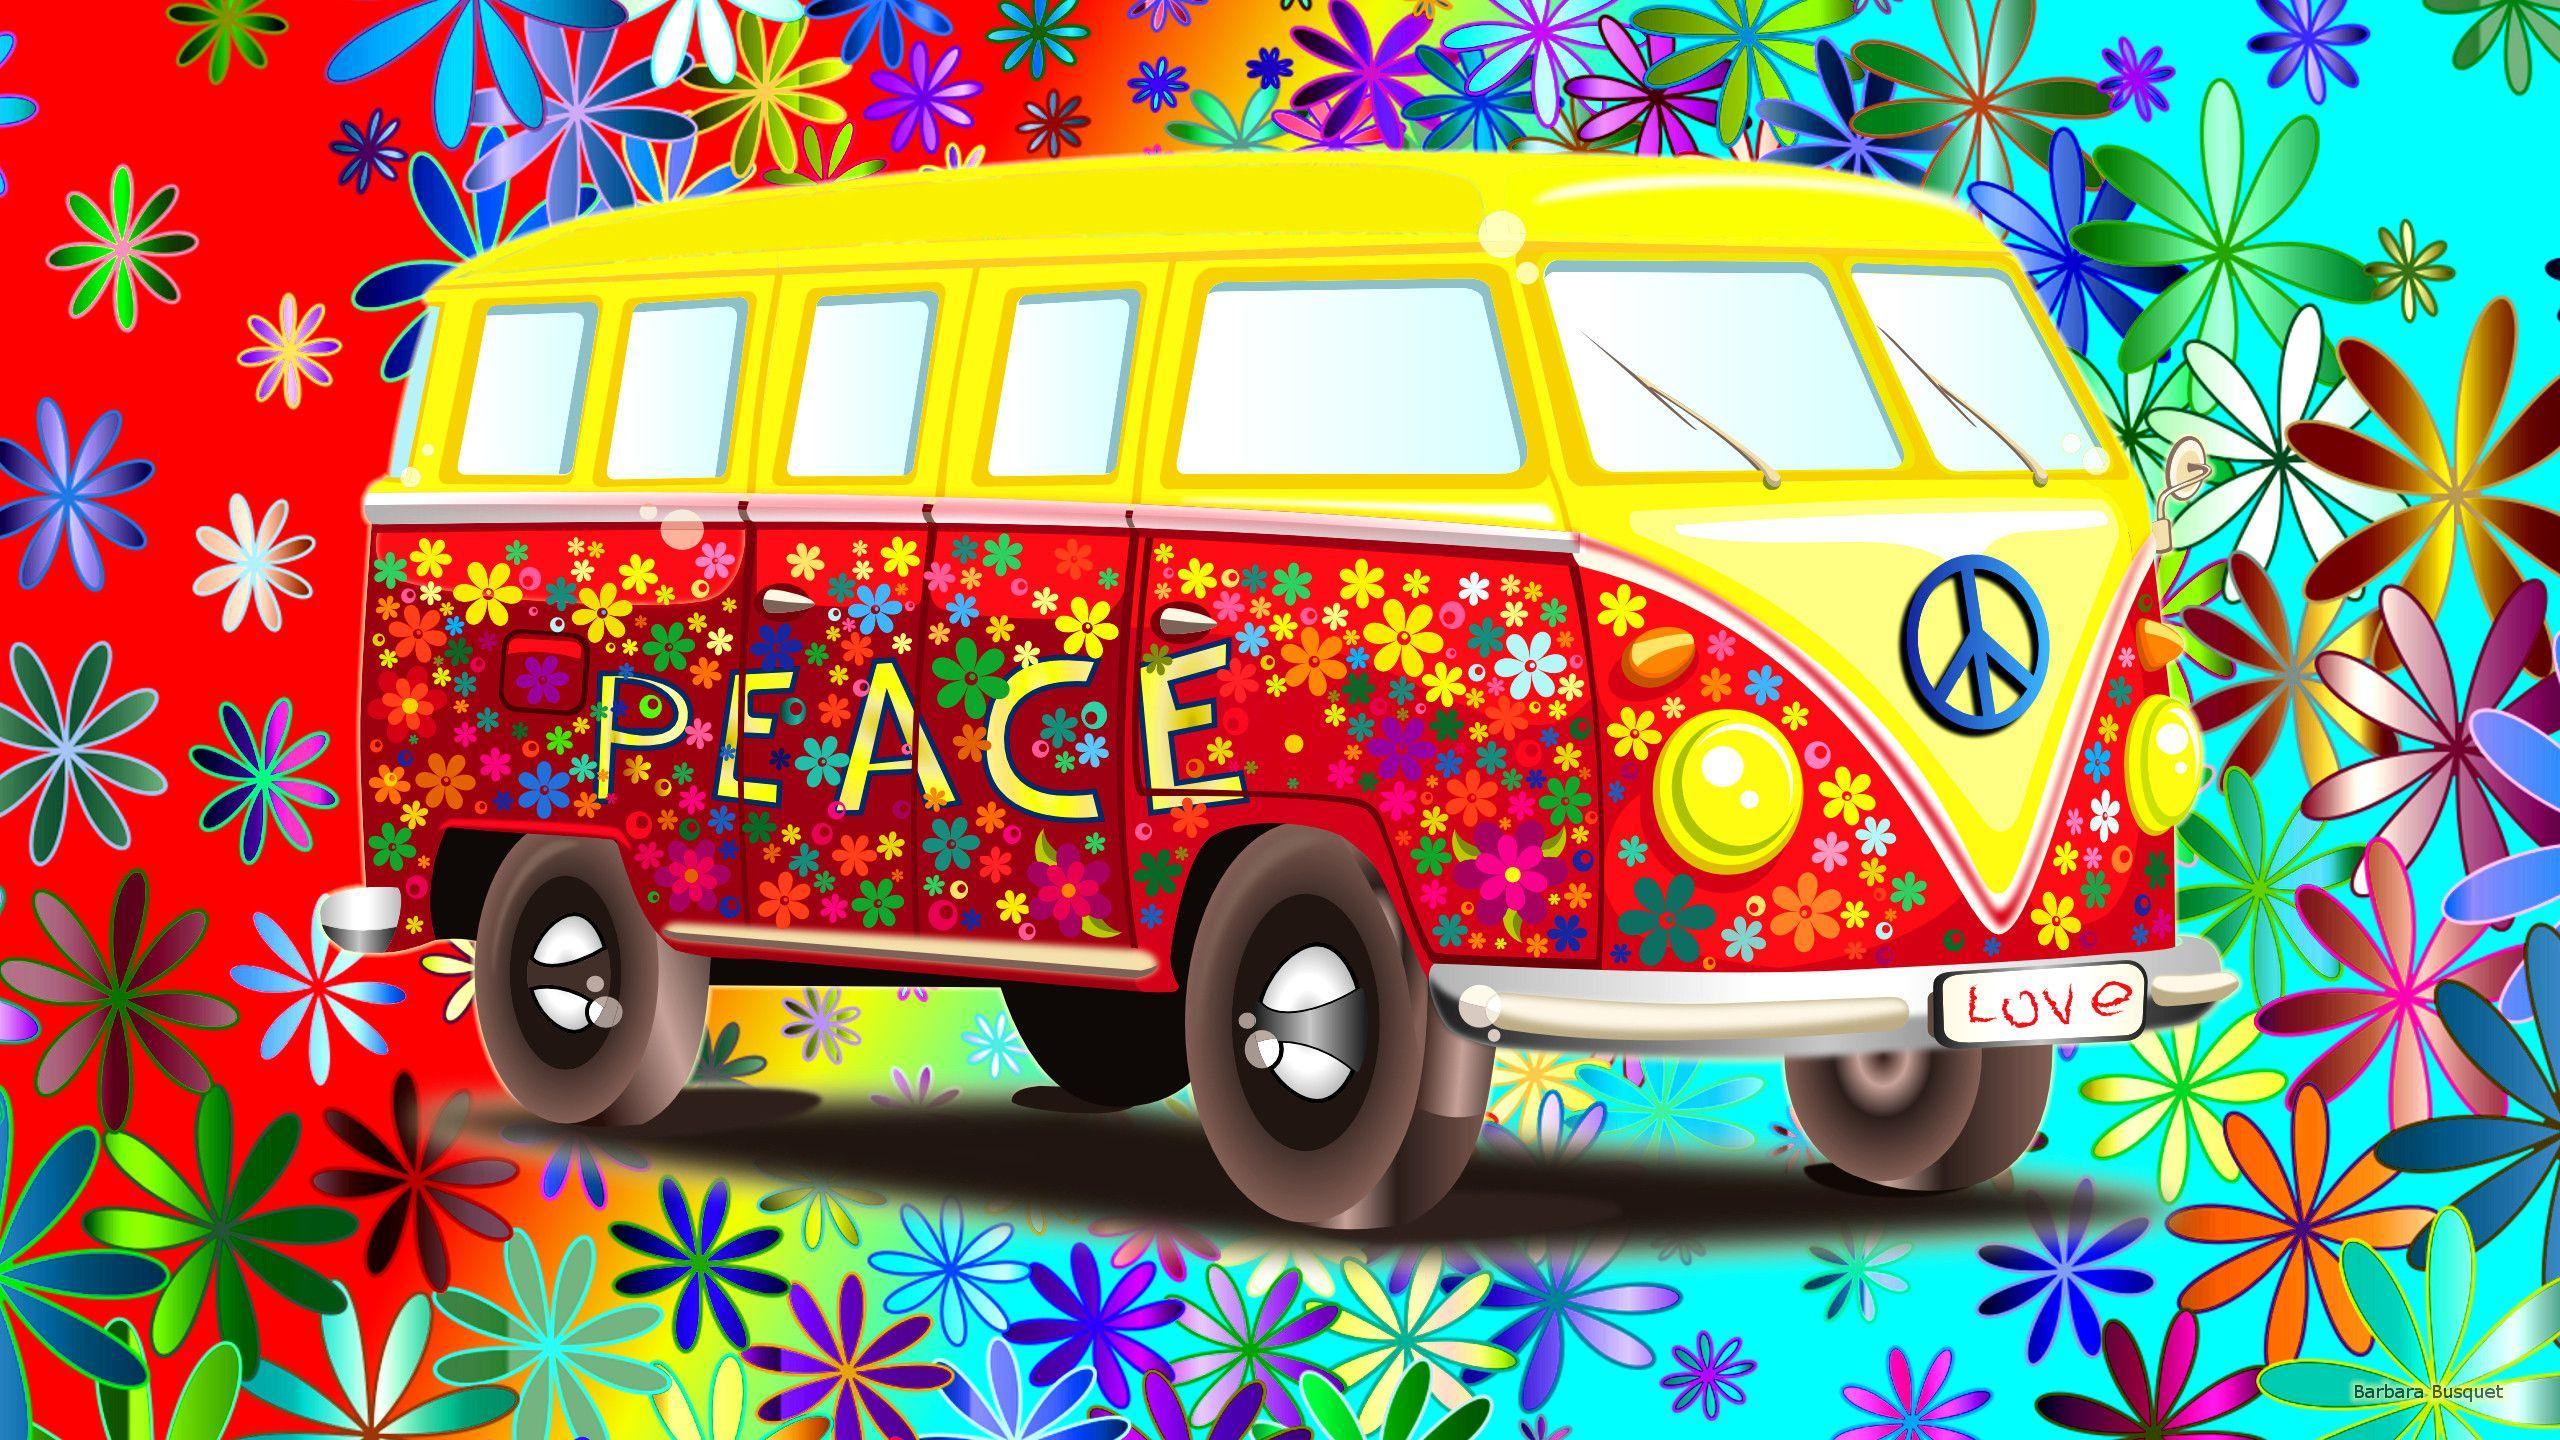 VW bus wallpapers with flowers